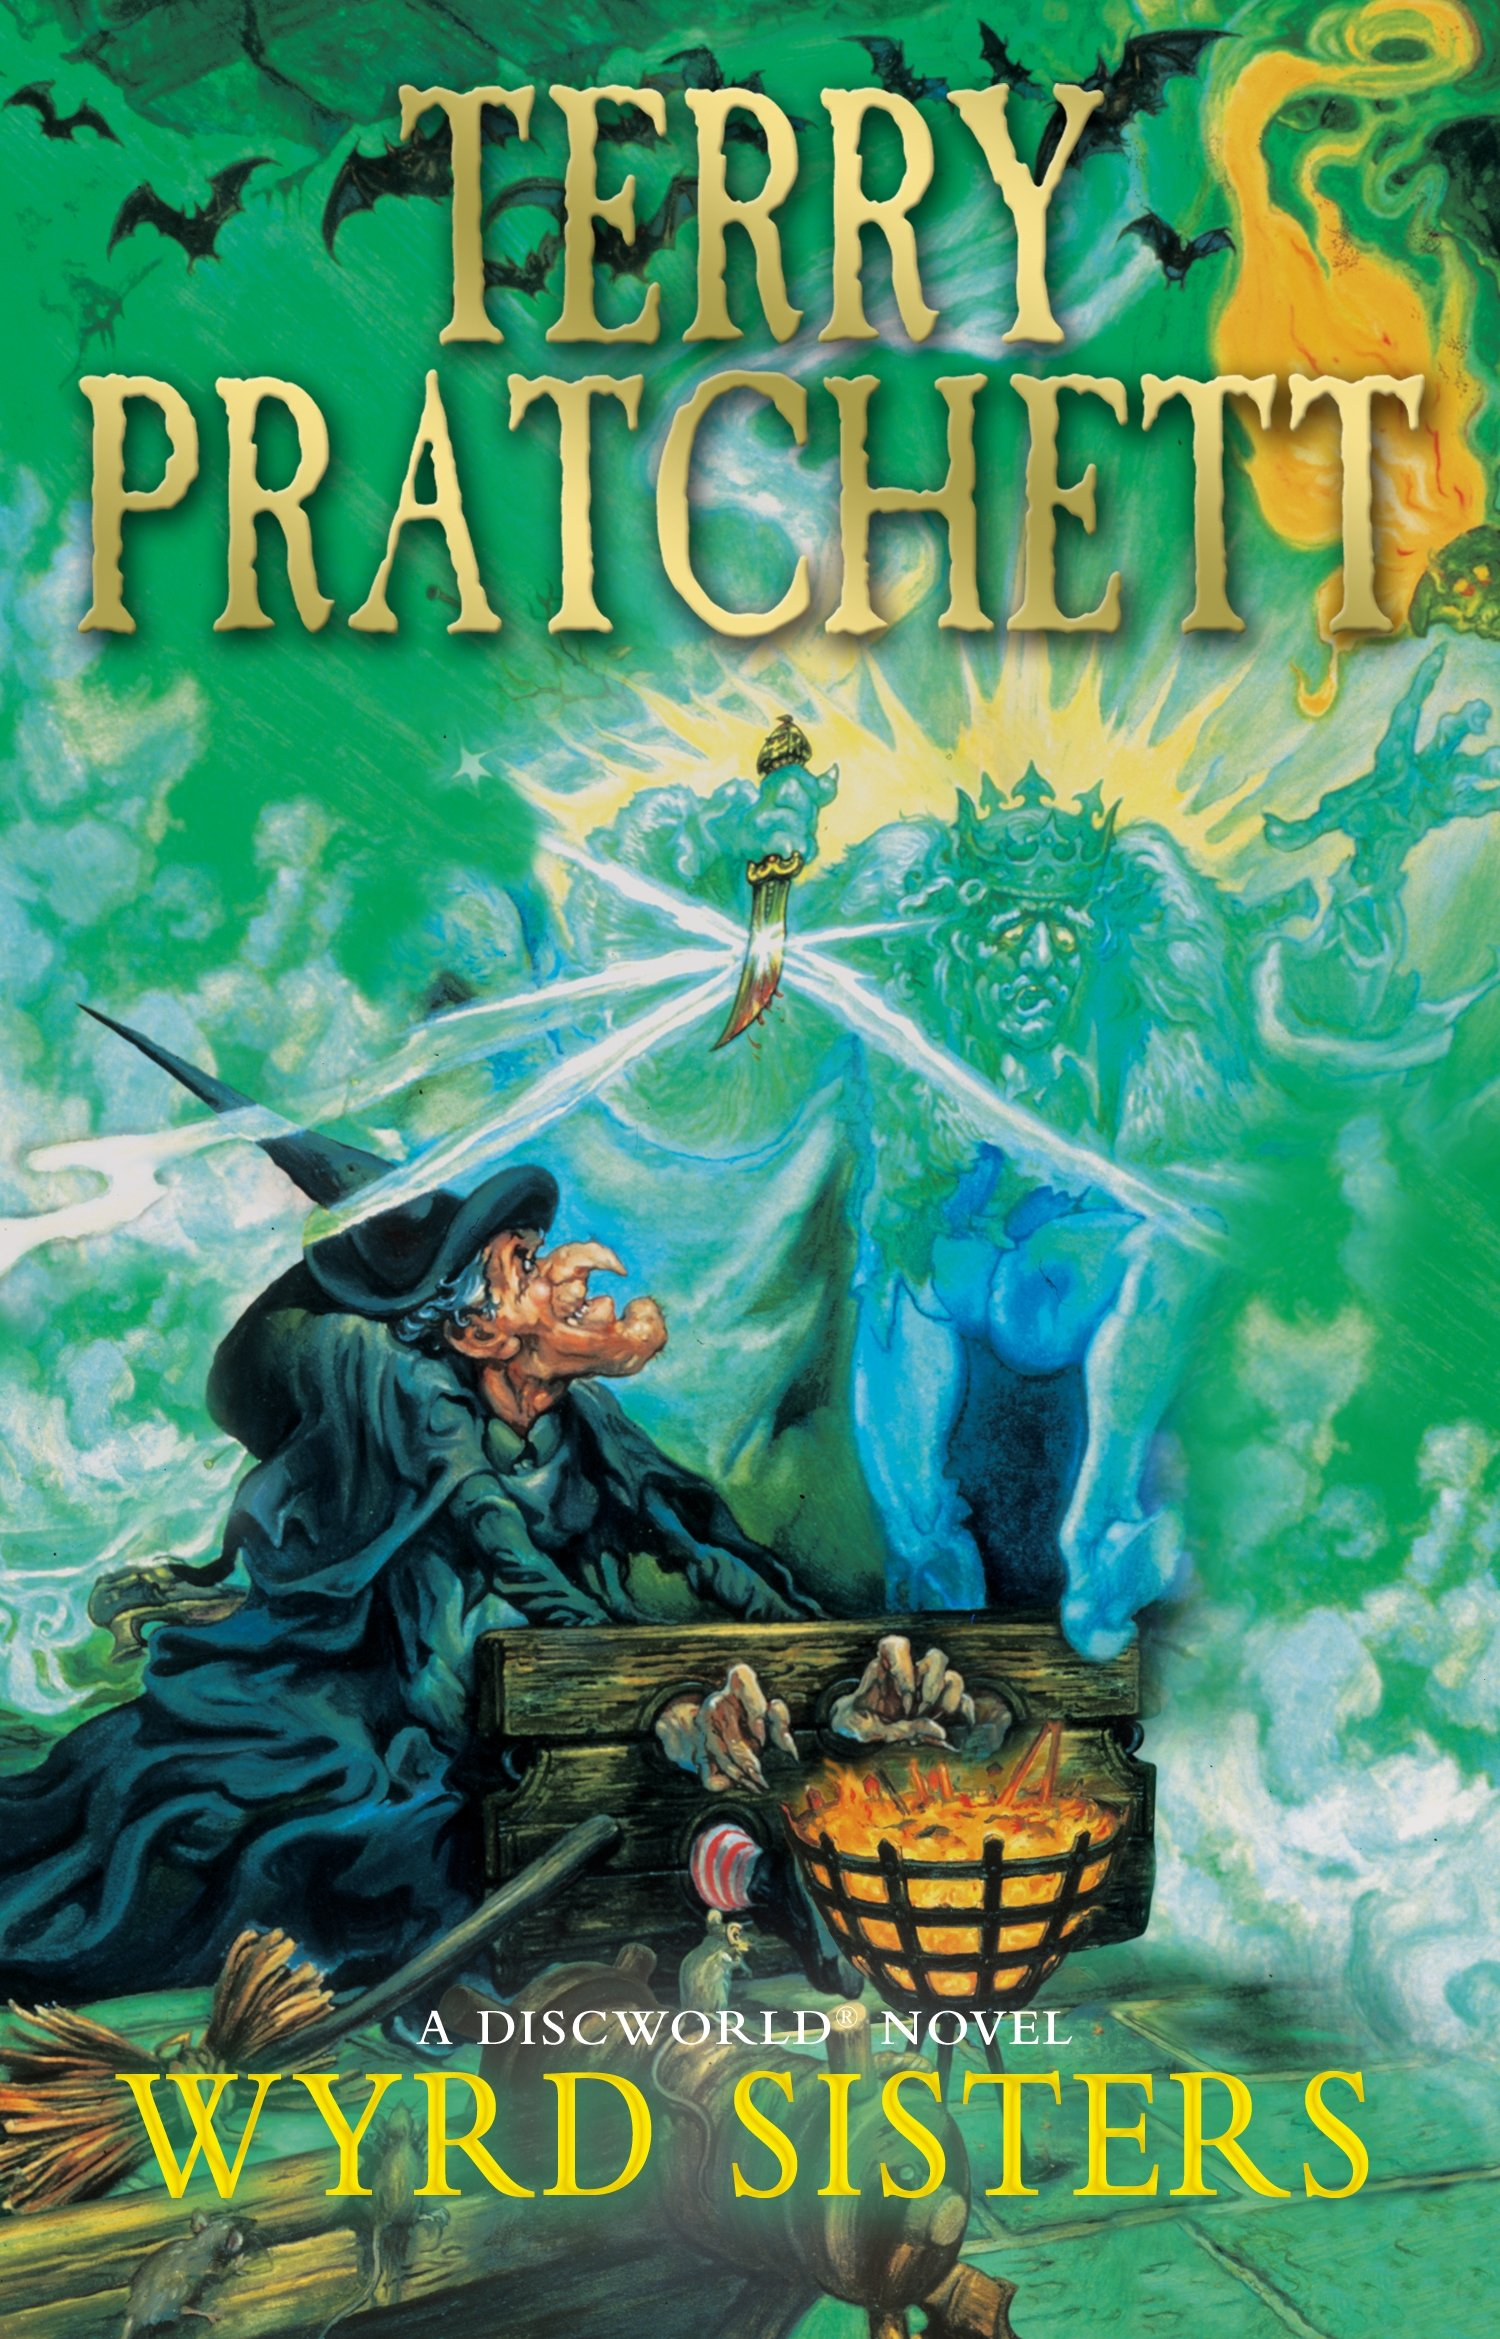 The cover of Wyrd Sisters by Terry Pratchett.